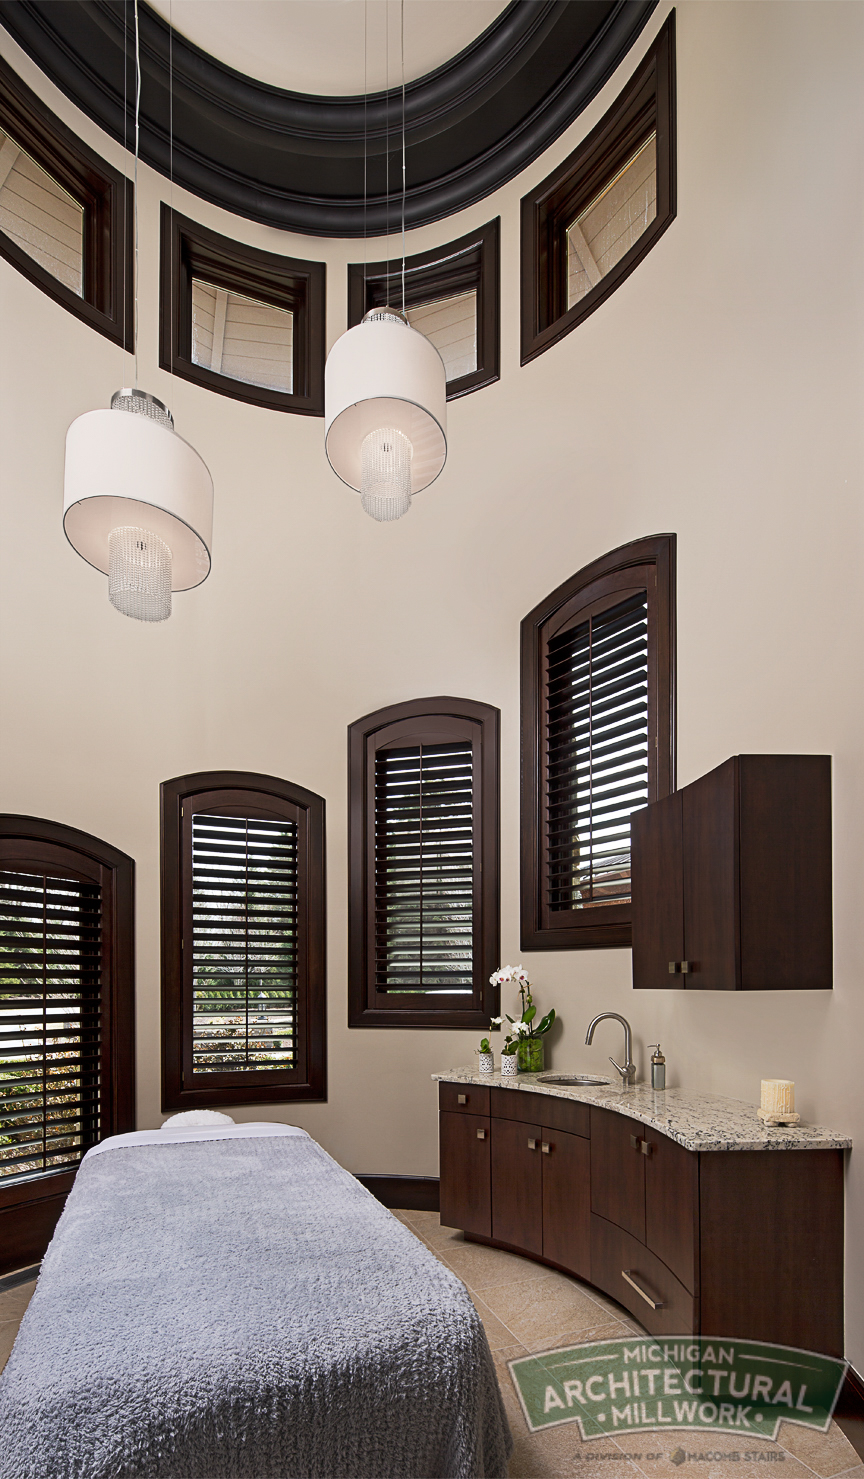 Michigan Architectural Millwork- Moulding and Millwork Photo-54.jpg